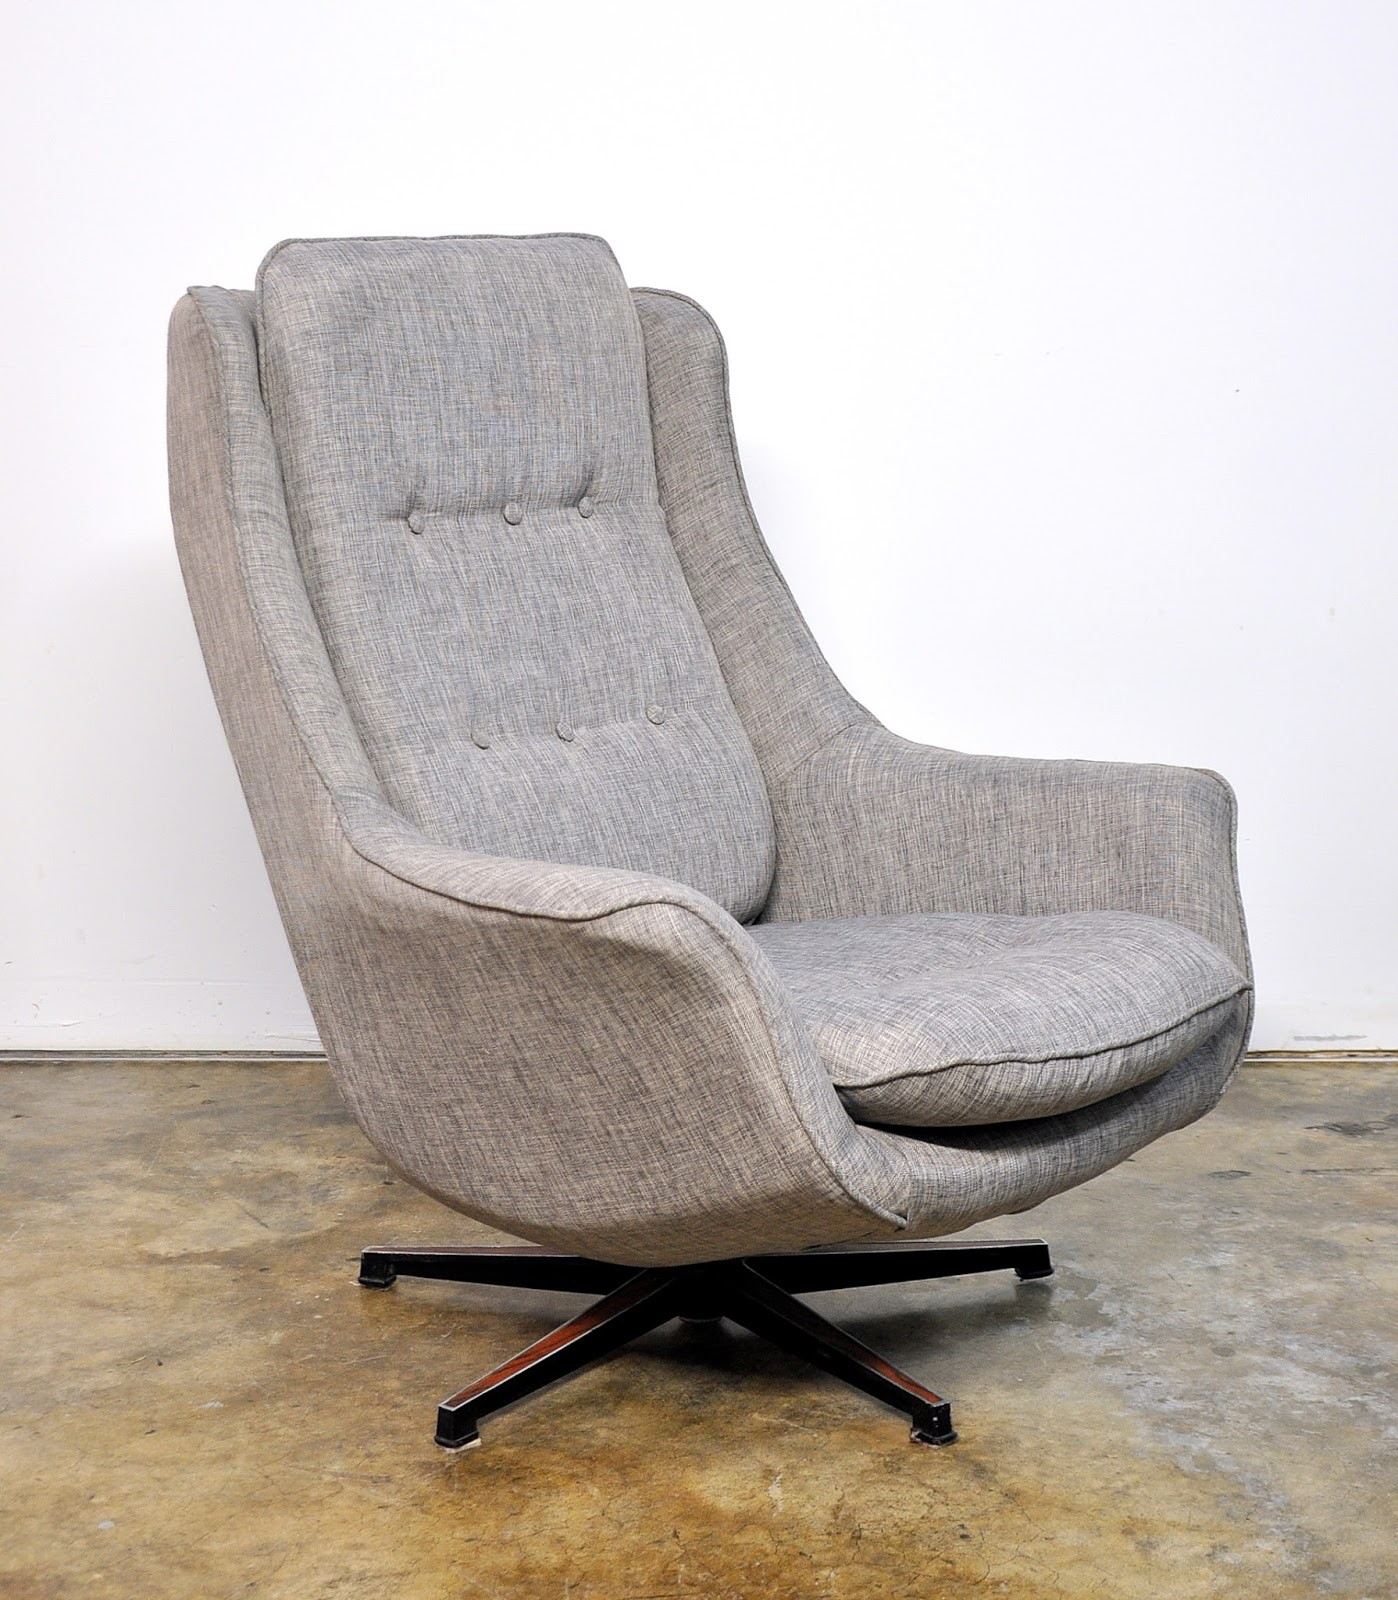 SELECT MODERN: Mid Century Swivel Lounge Chair